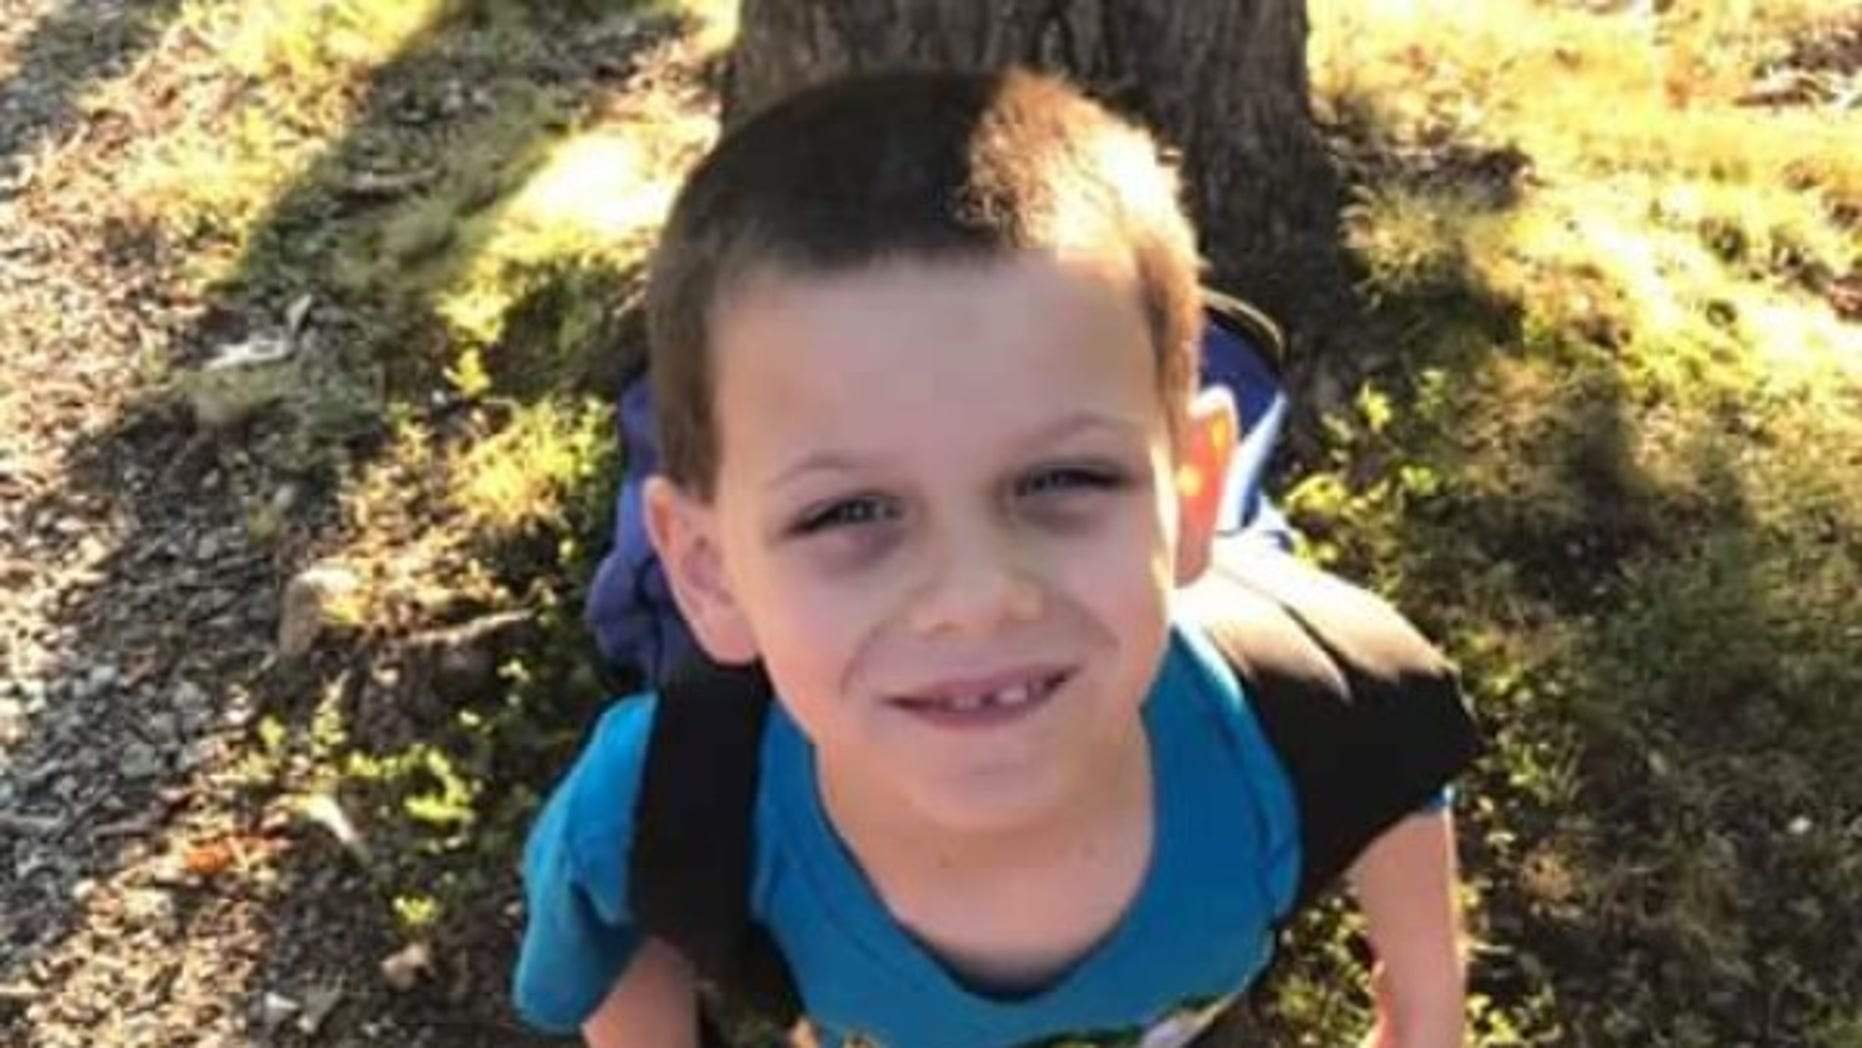 7-year old Kevin Baynes, Jr., of Hurt, Virginia died 24-hours after being diagnosed with the flu.